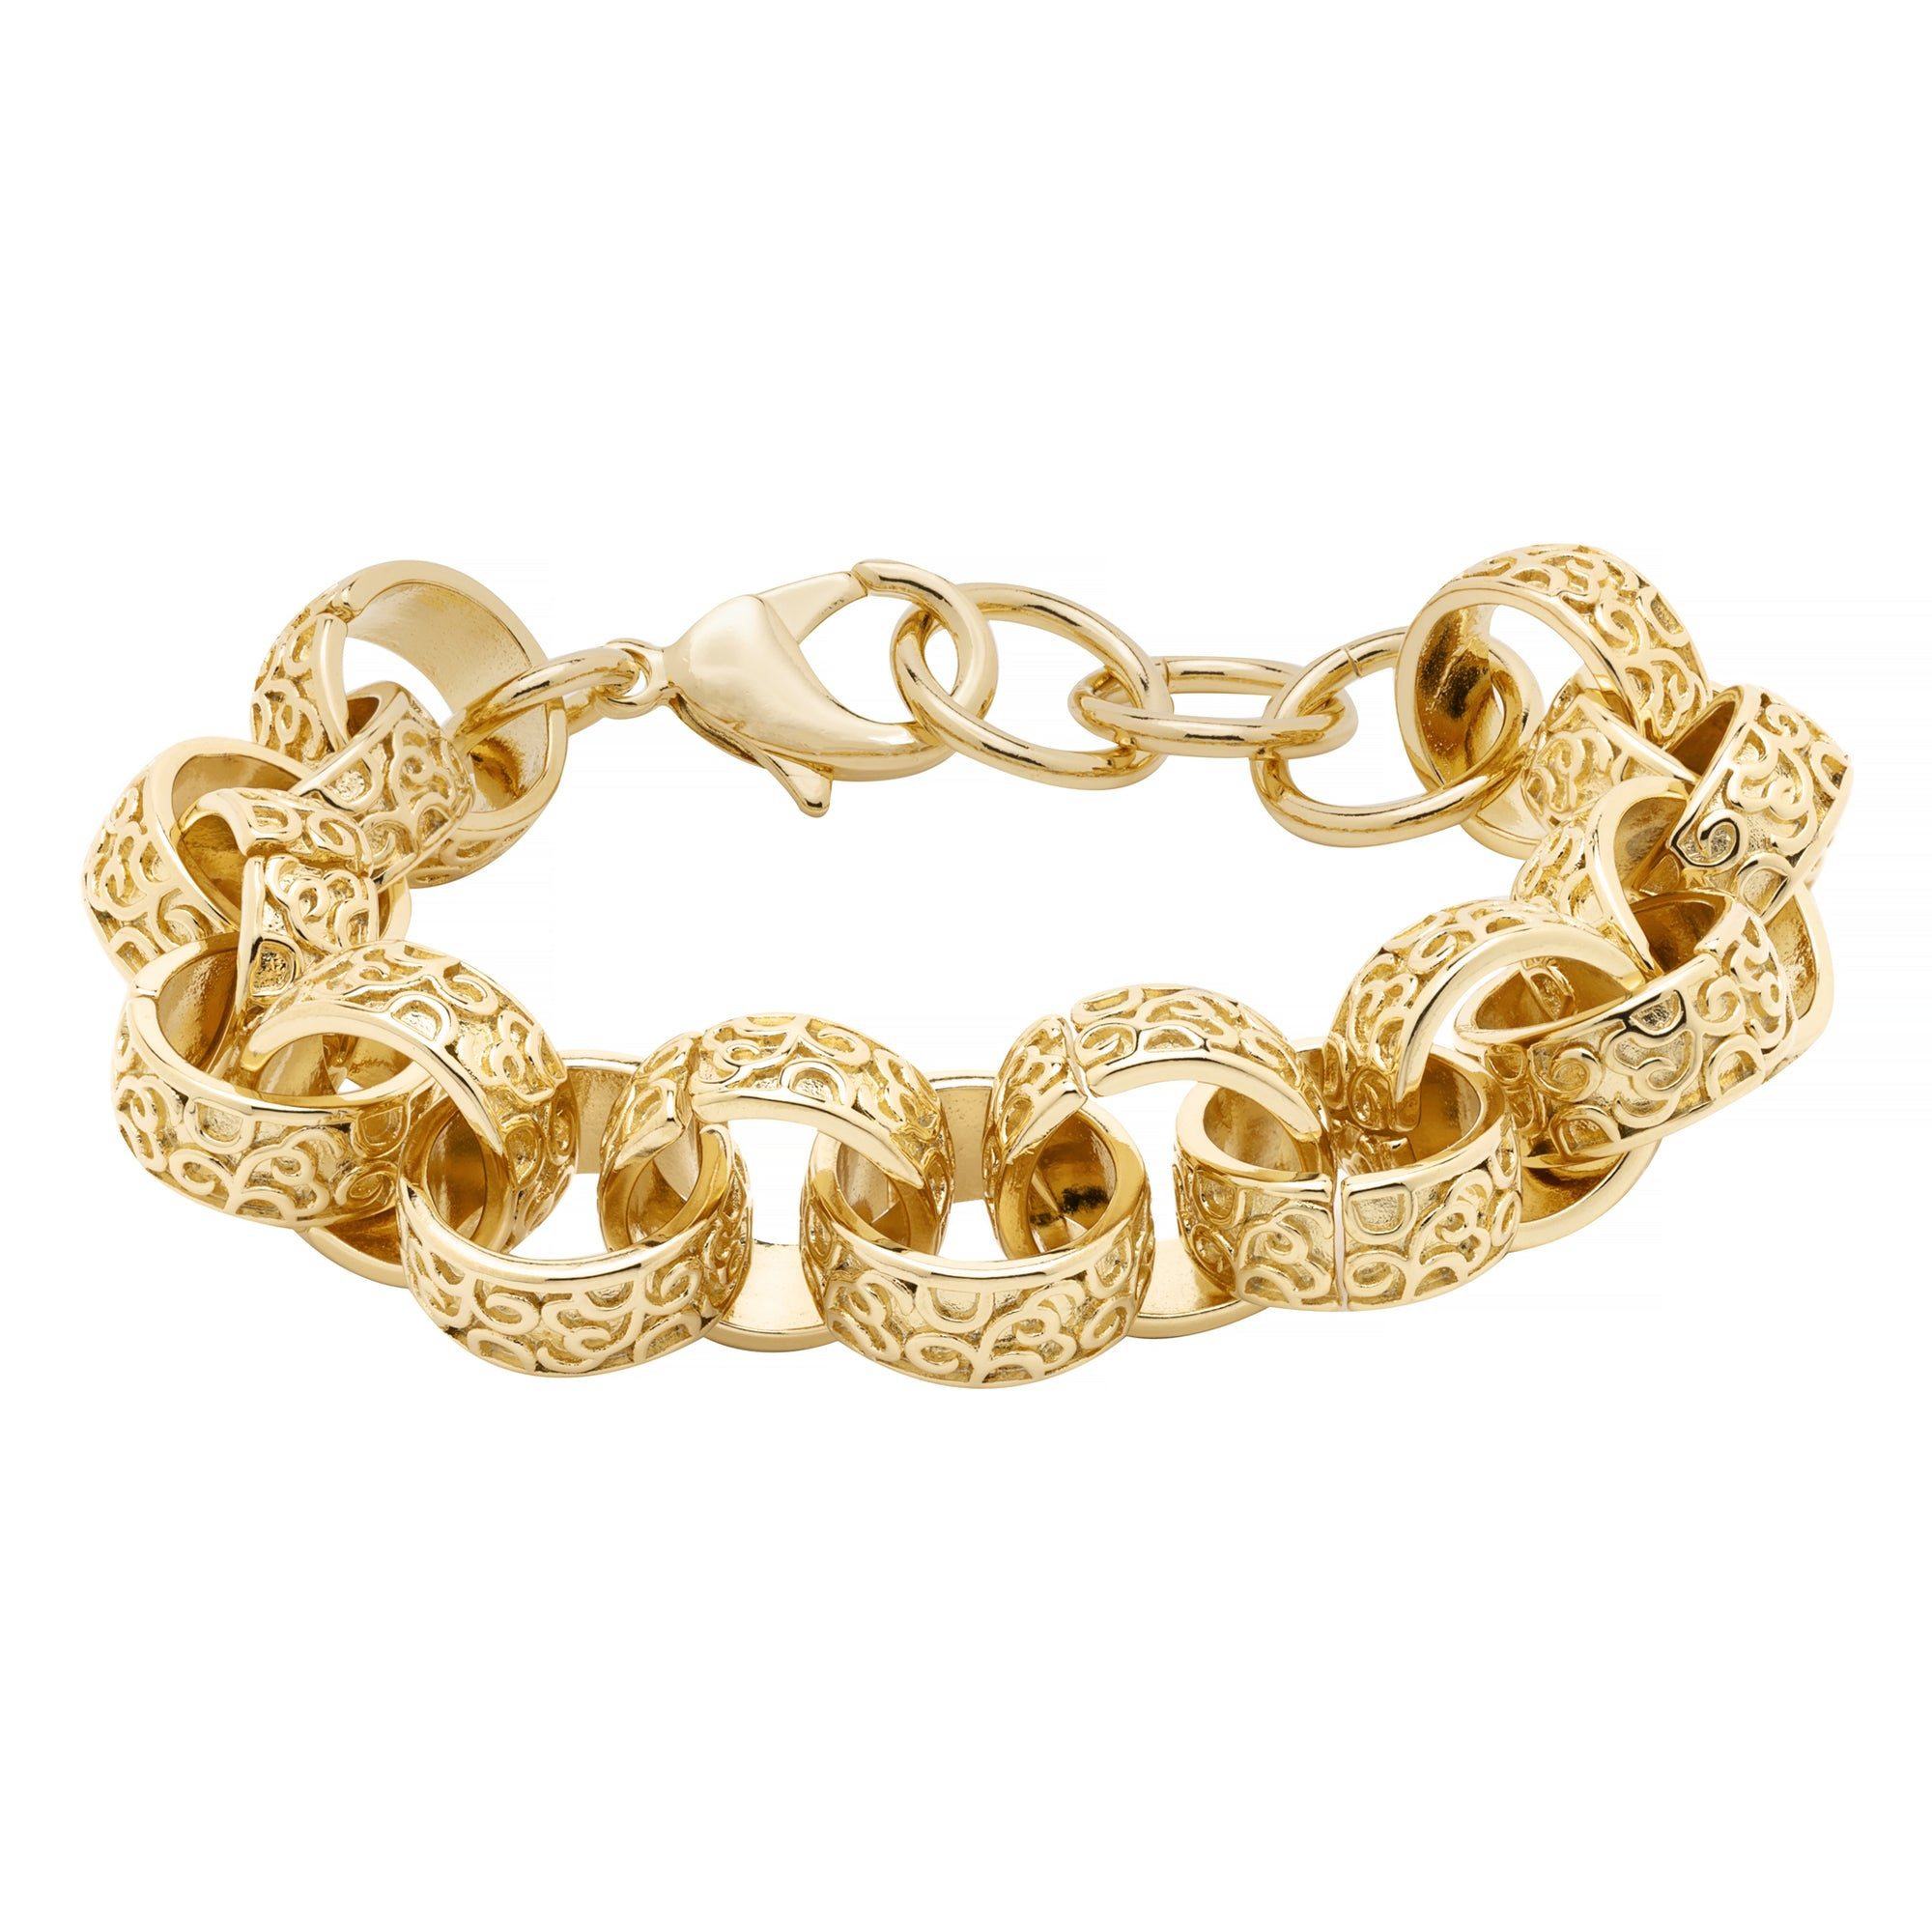 [Upgraded Quality] 15mm Gold XXL Ornate Belcher Bracelet-Bracelets-Bling King-Bling King